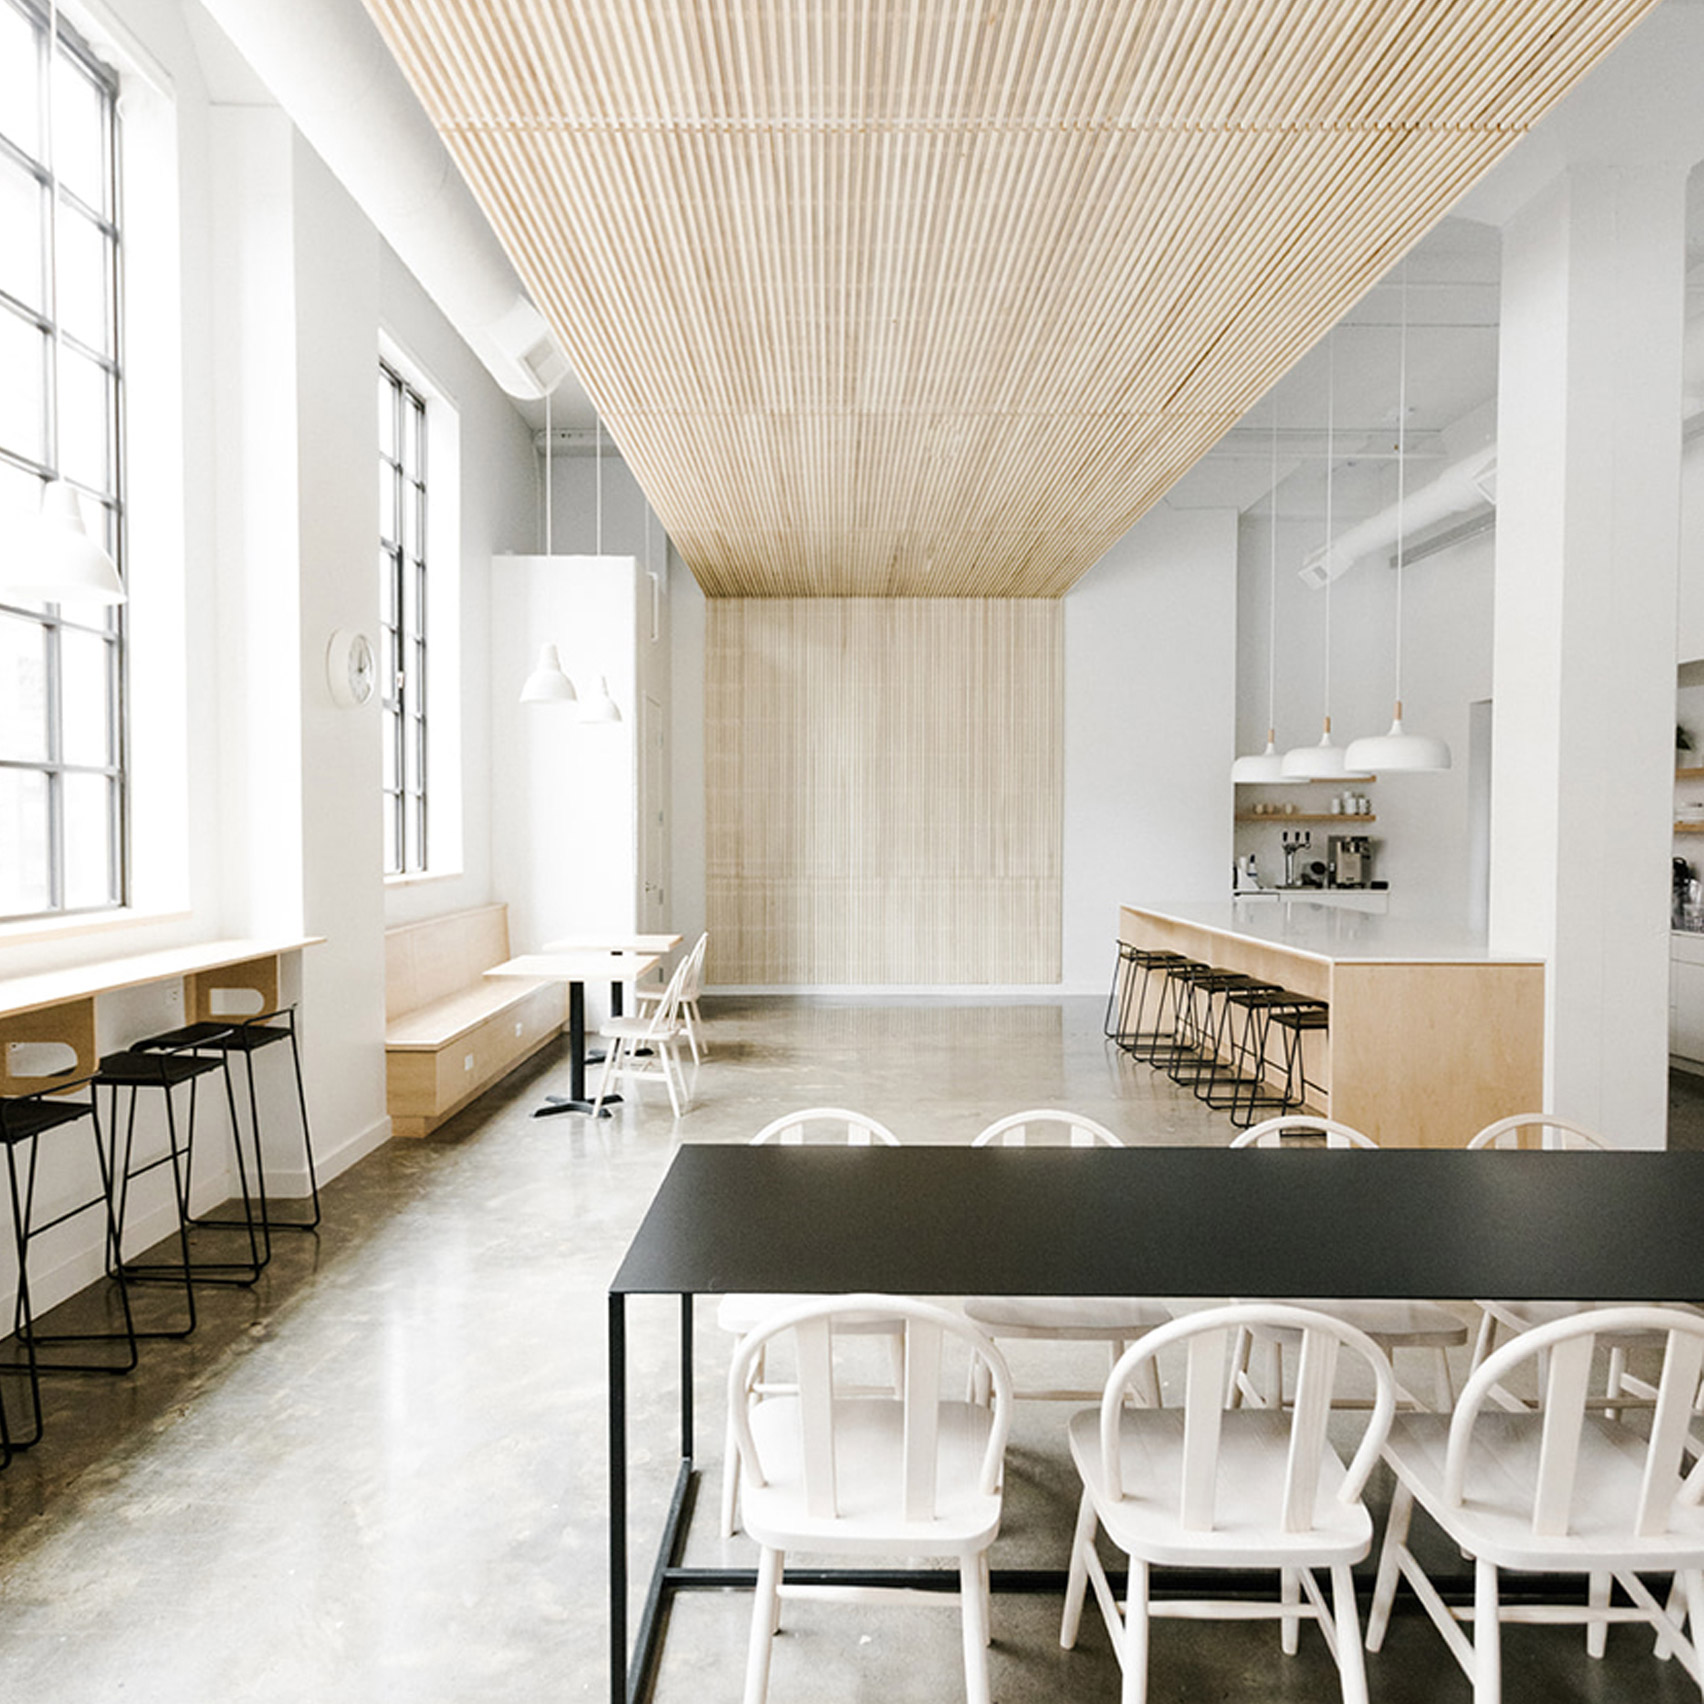 Top 10 office interiors: Work & Co Portland, USA, by Casework